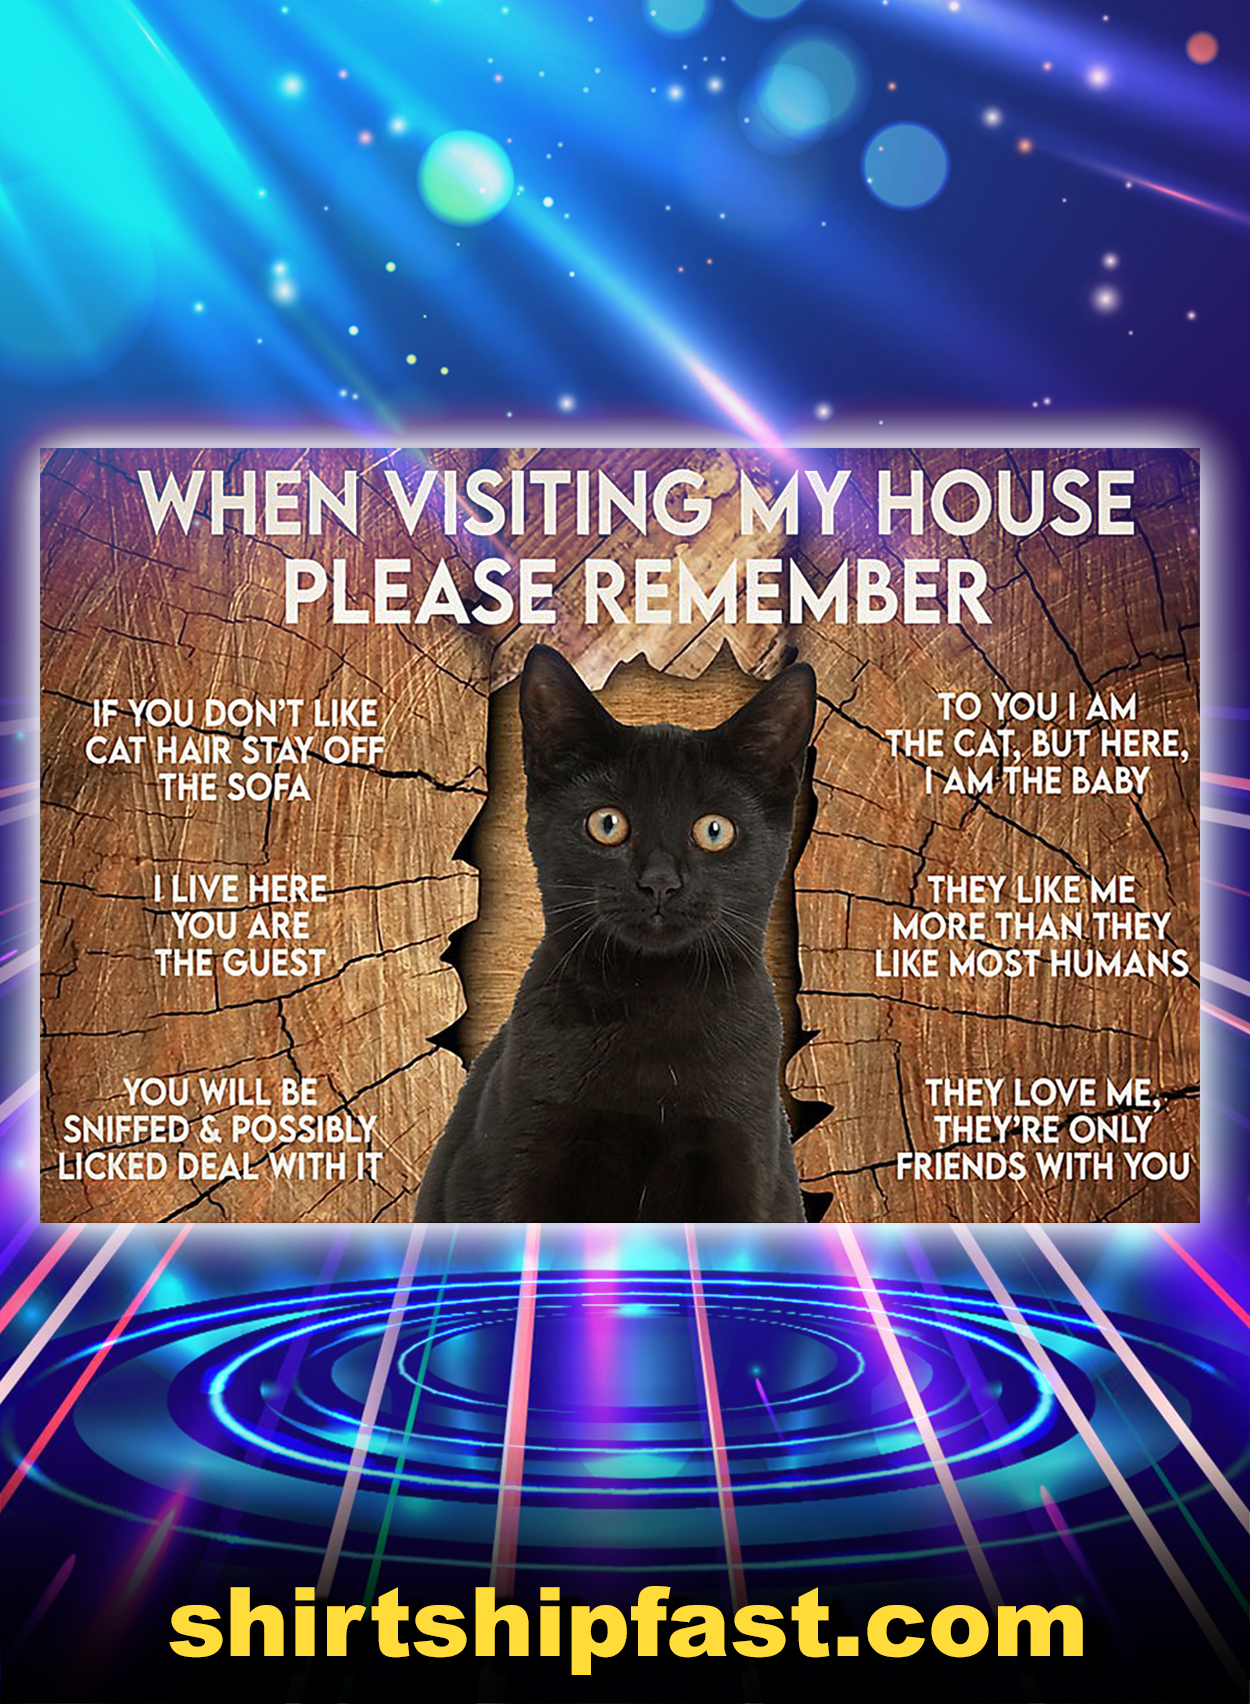 Cat when visiting my house please remember poster - A2